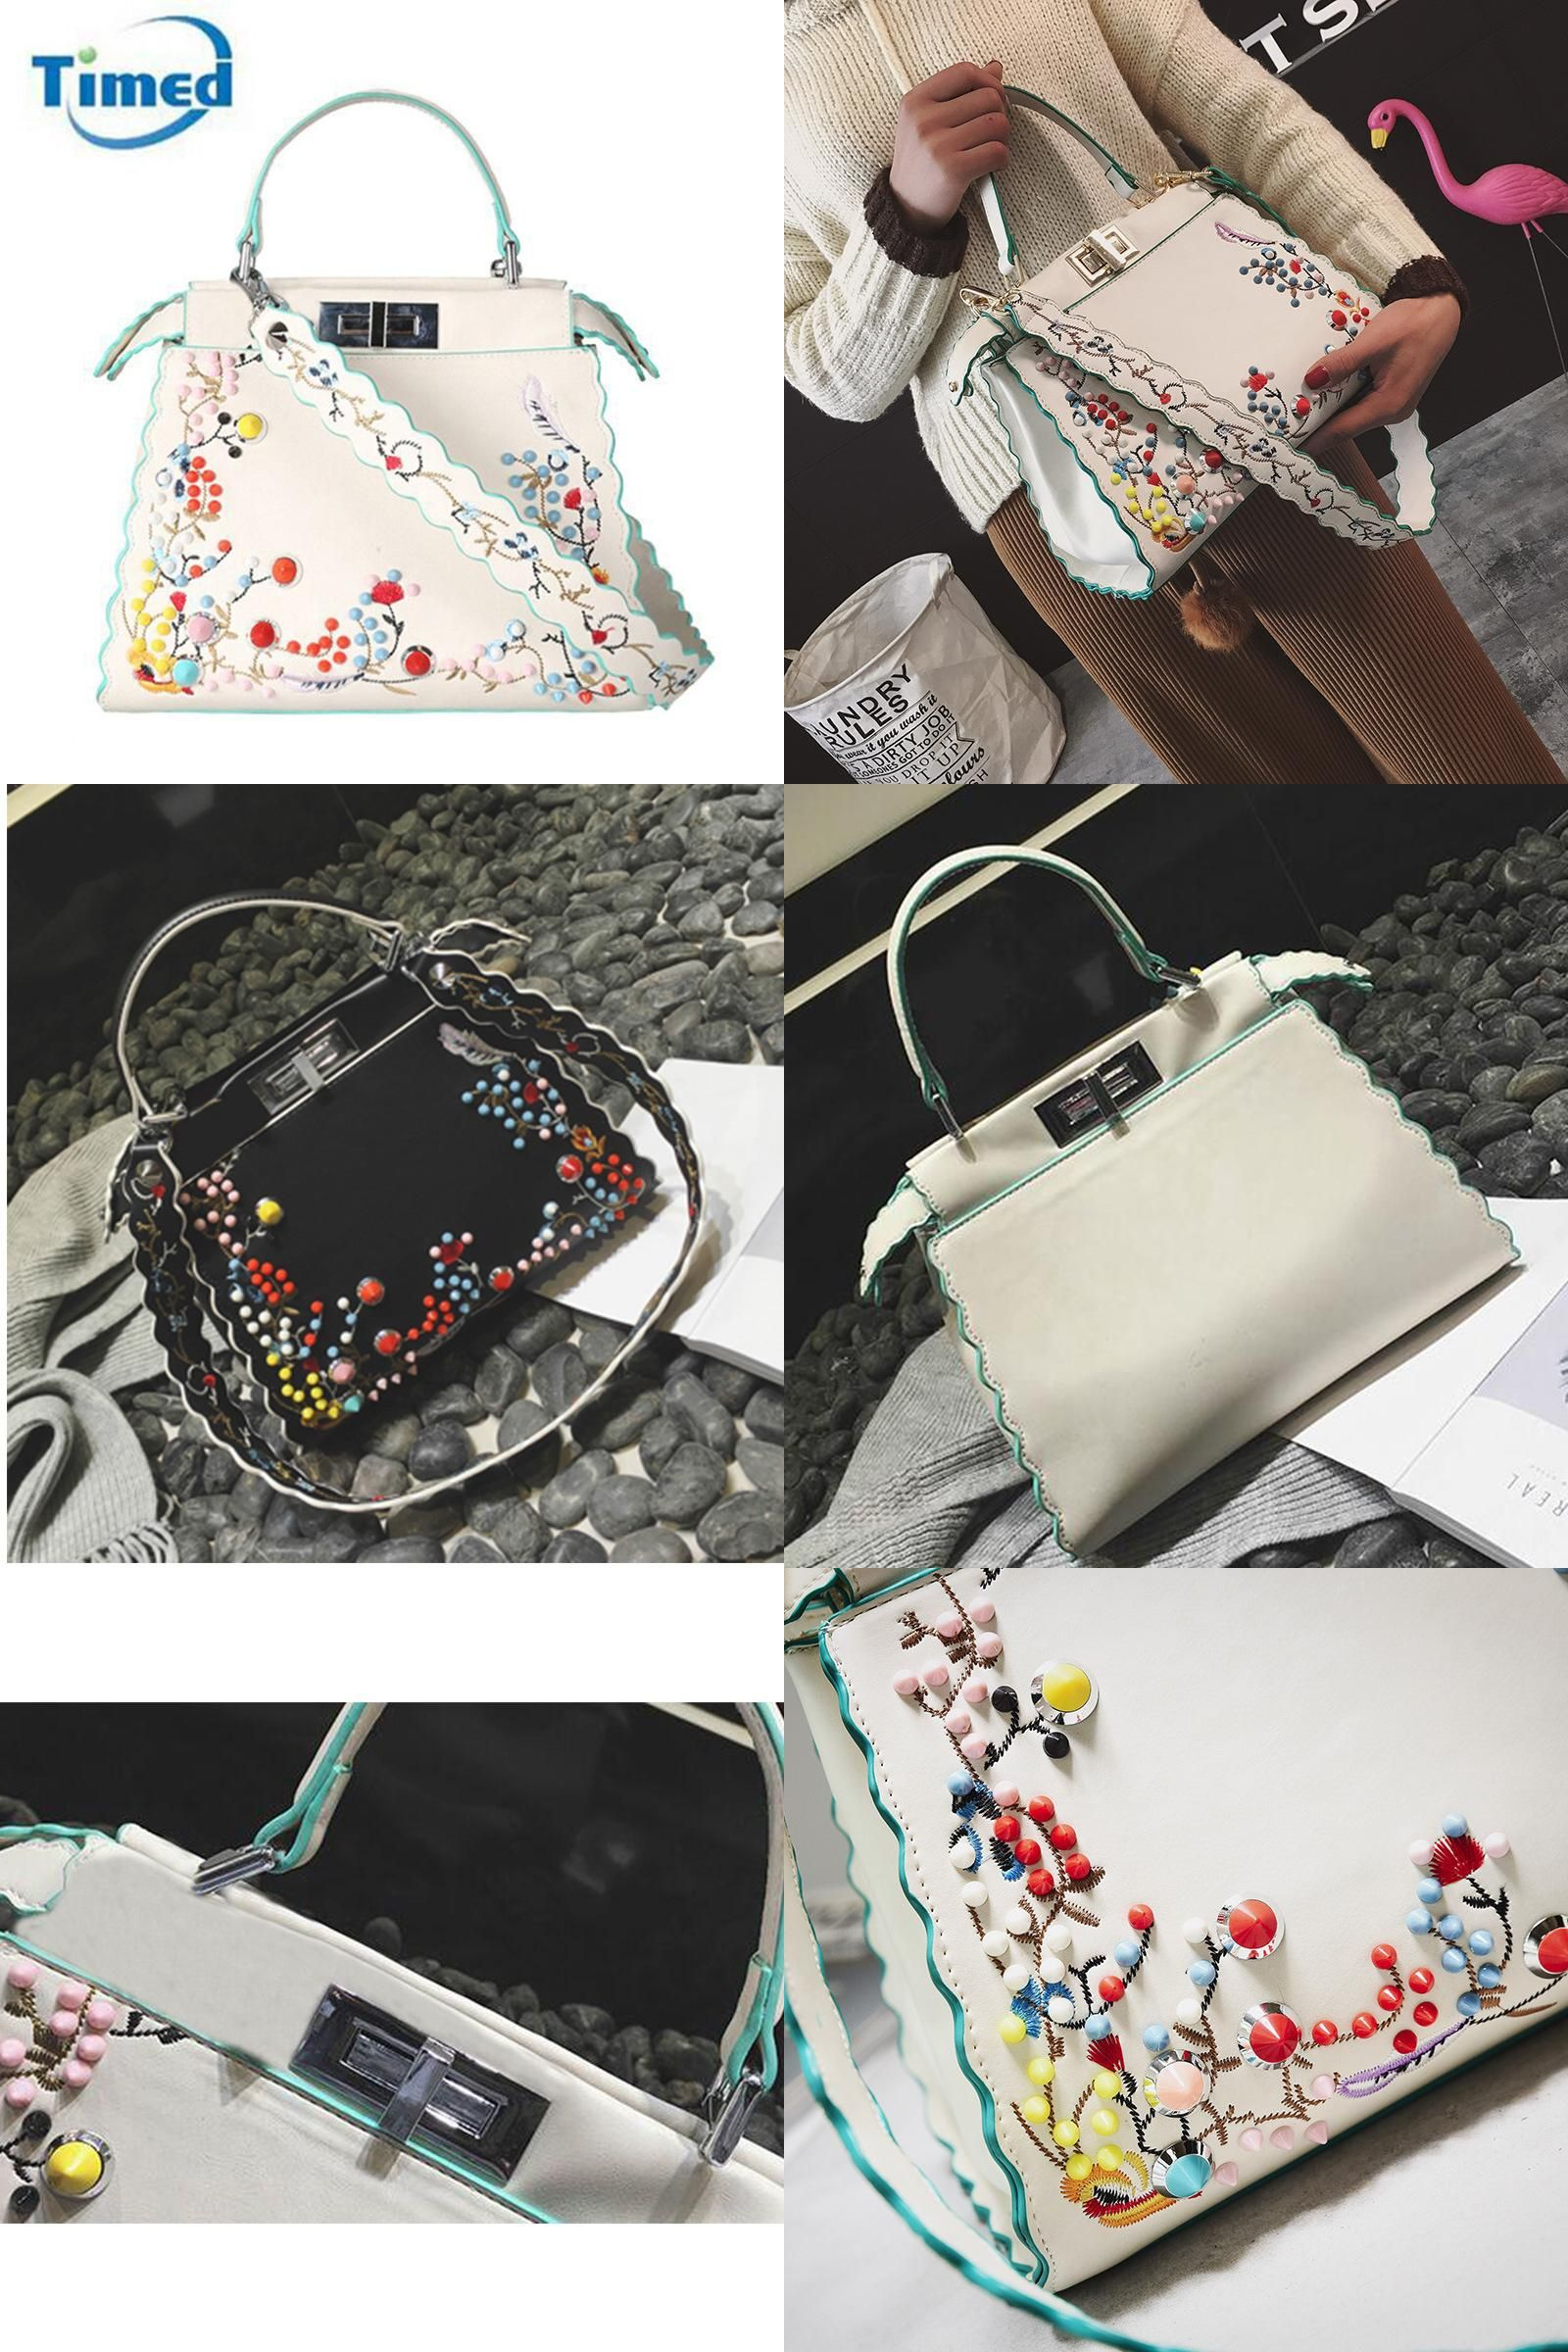 5475770ee2f Visit to Buy] 2017 Europe Style New Women PU Leather Embroidery ...